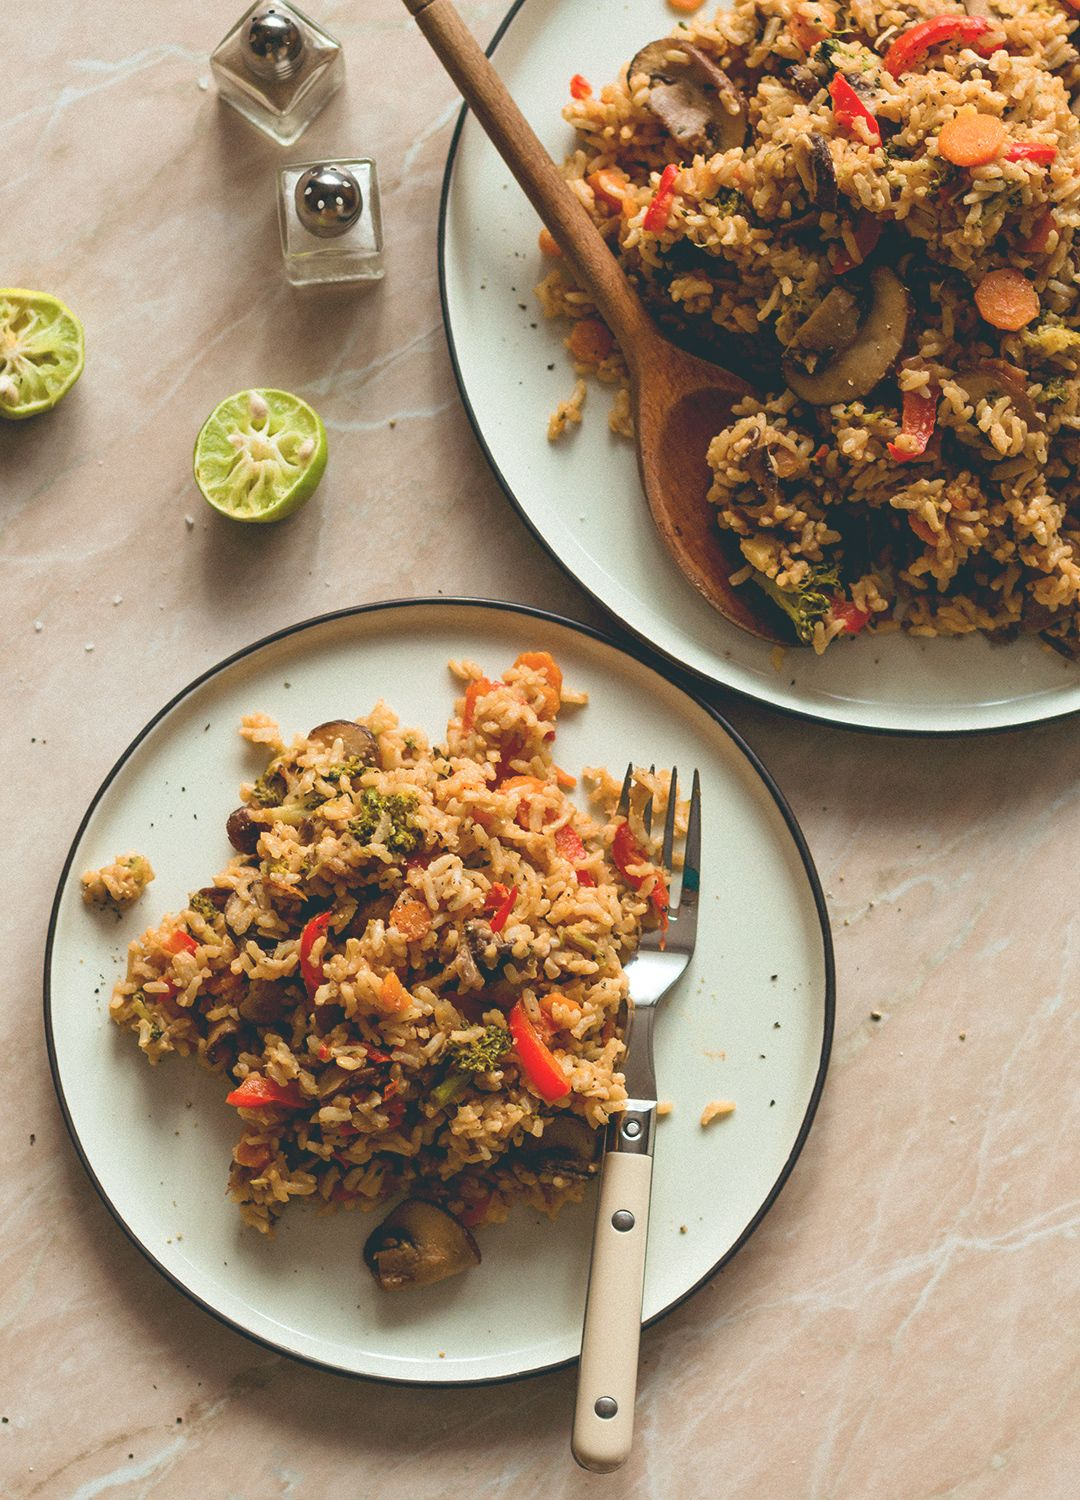 Loaded Veggie Fried Rice - the most comforting, filling, hearty recipe. Made with brown rice, mushrooms, veggies, spices, and tamari almond butter dressing. (vegan, GF) | thehealthfulideas.com: